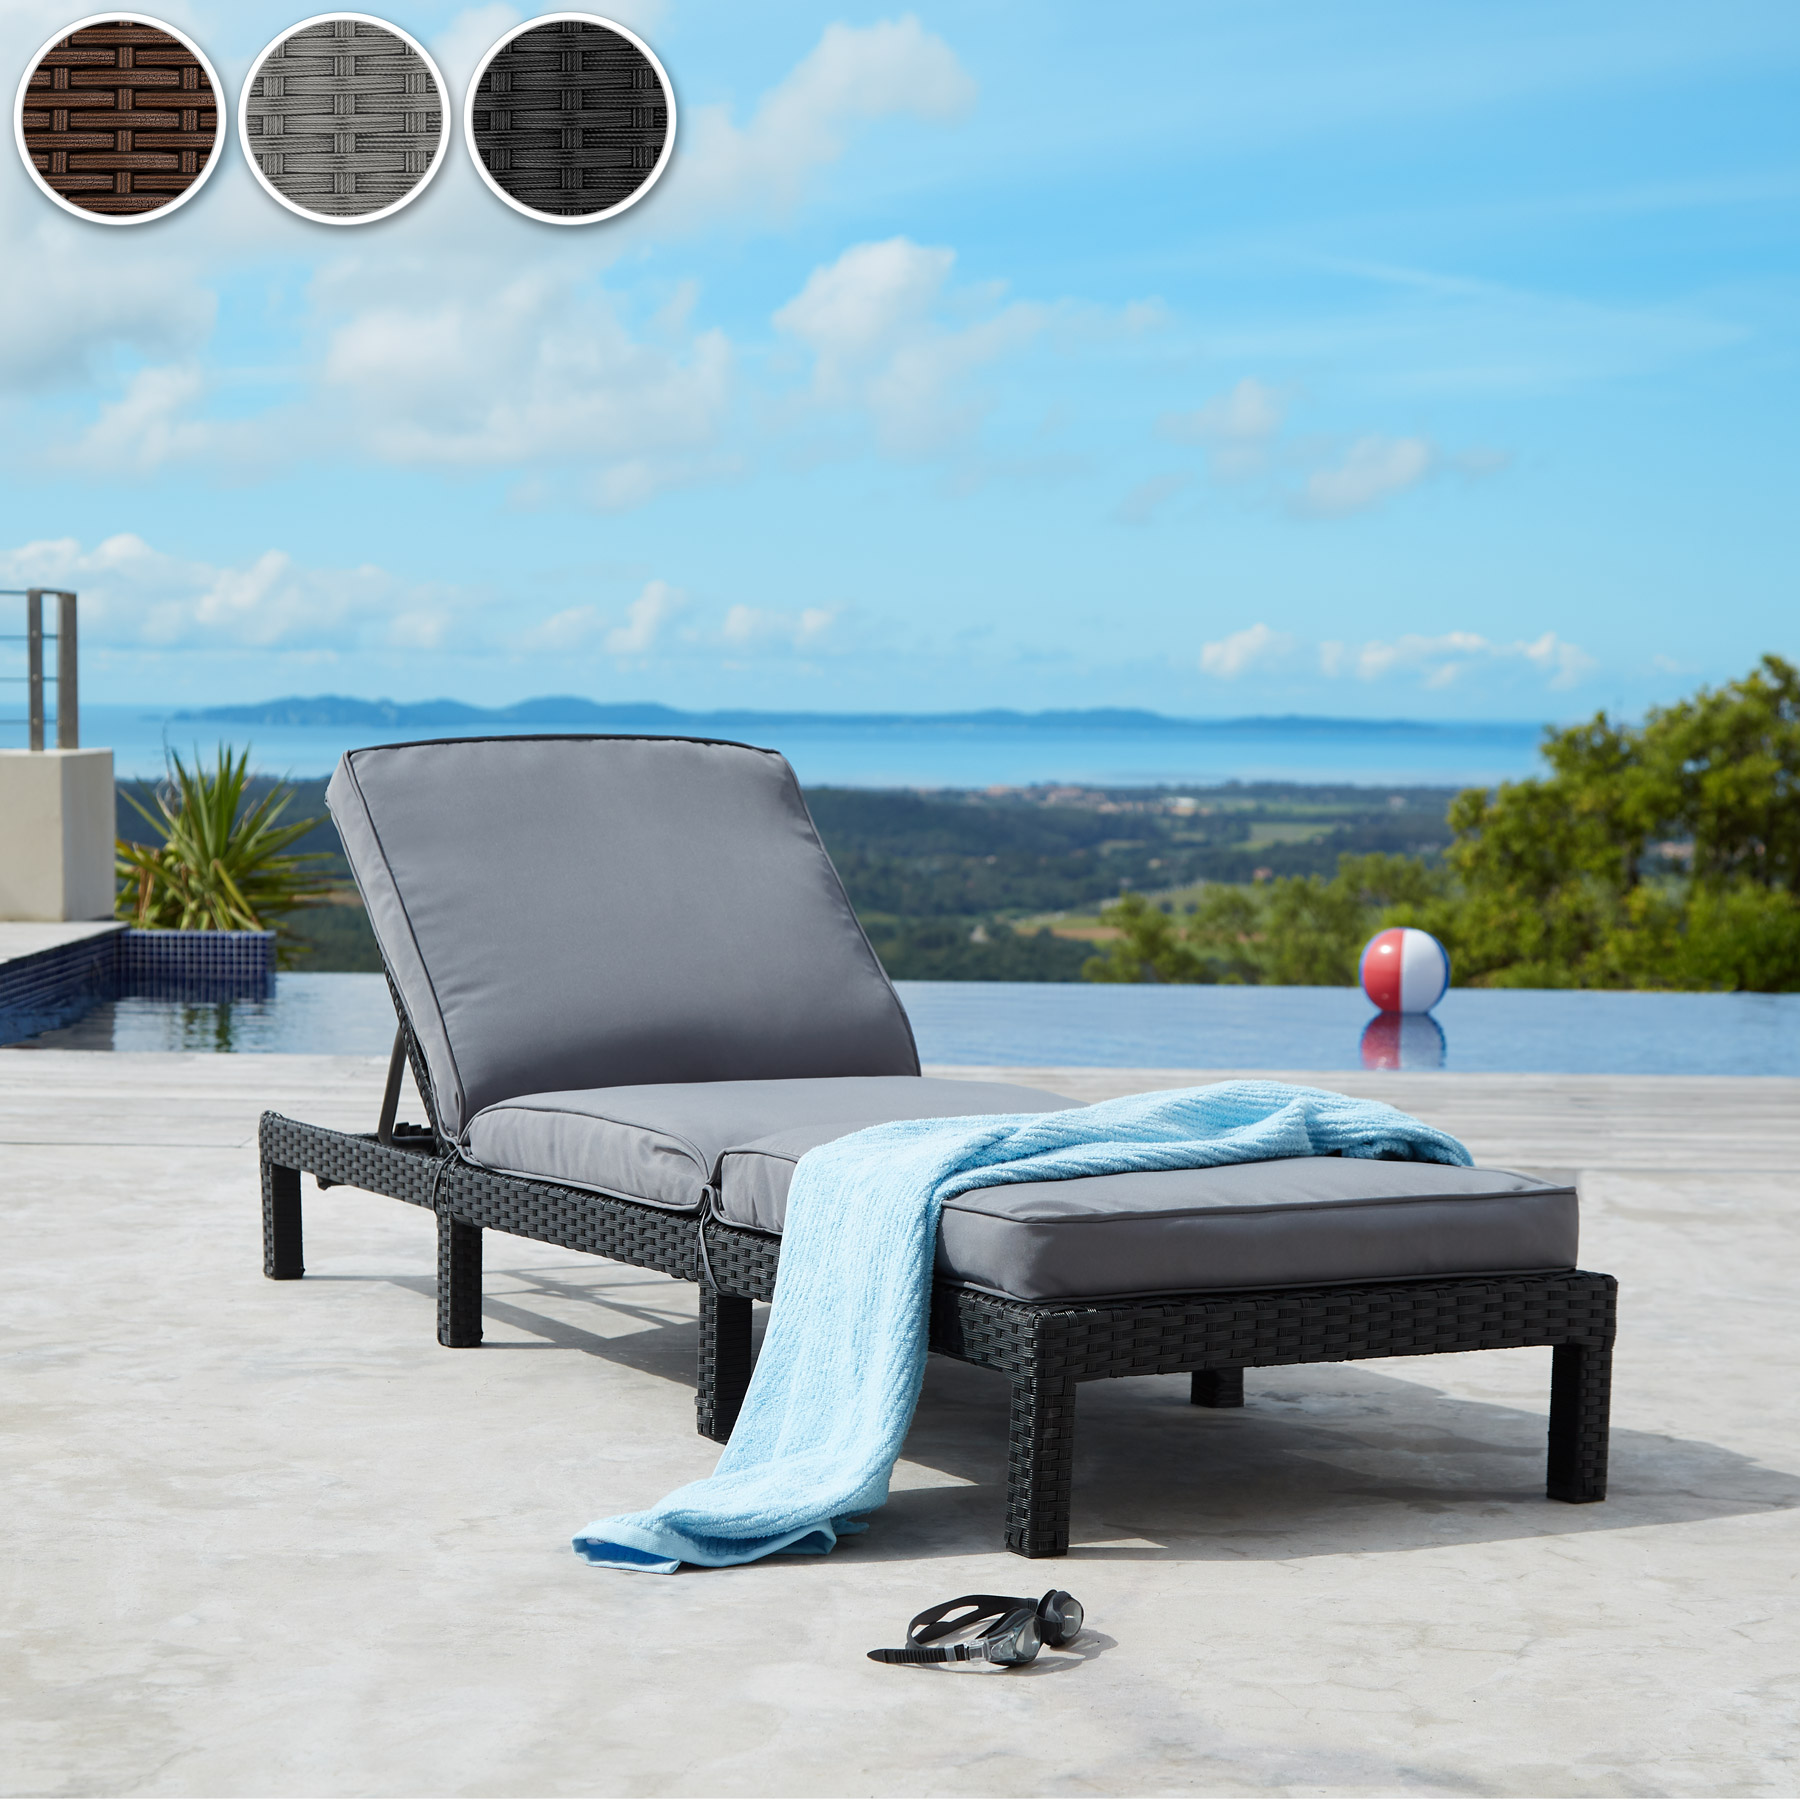 polyrattan sonnenliege gartenliege relaxliege rattanliege strandliege schwarz ebay. Black Bedroom Furniture Sets. Home Design Ideas